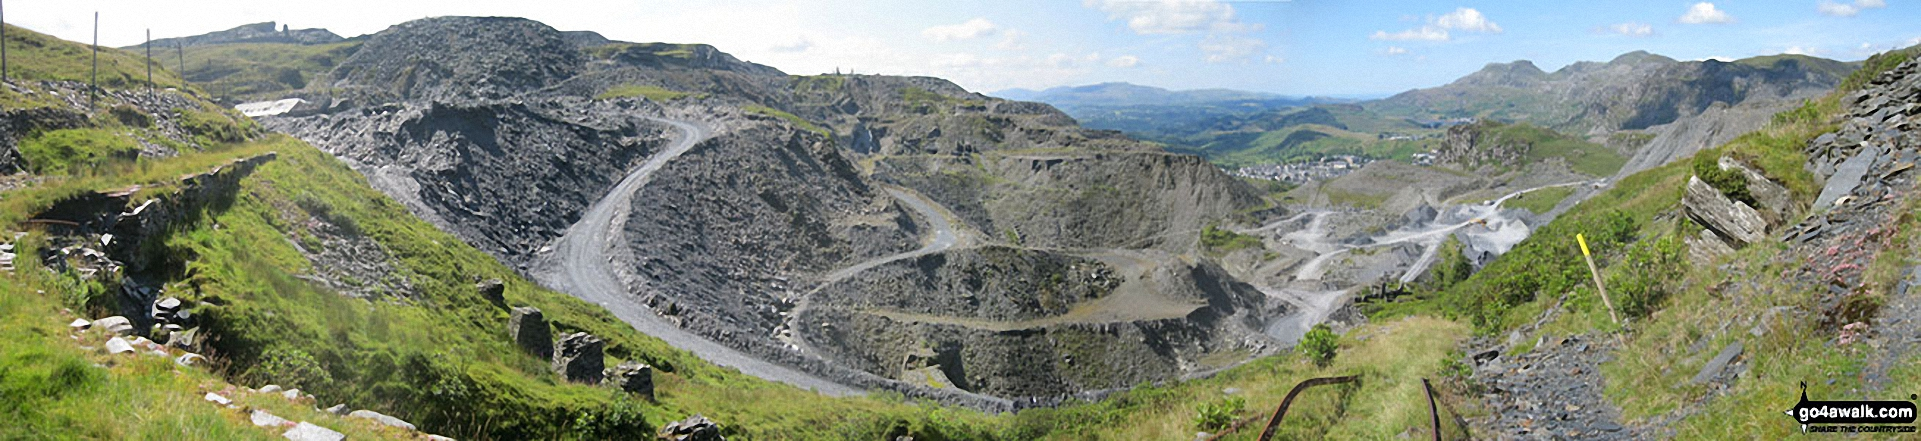 Maen-offeren Quarry from Drum House at the top of a disused incline with Arenig Fawr & Arenig Fach (on the horizon) and Moelwyn Bach, Craigysgafn and Moelwyn Mawr  (mid-distance right)